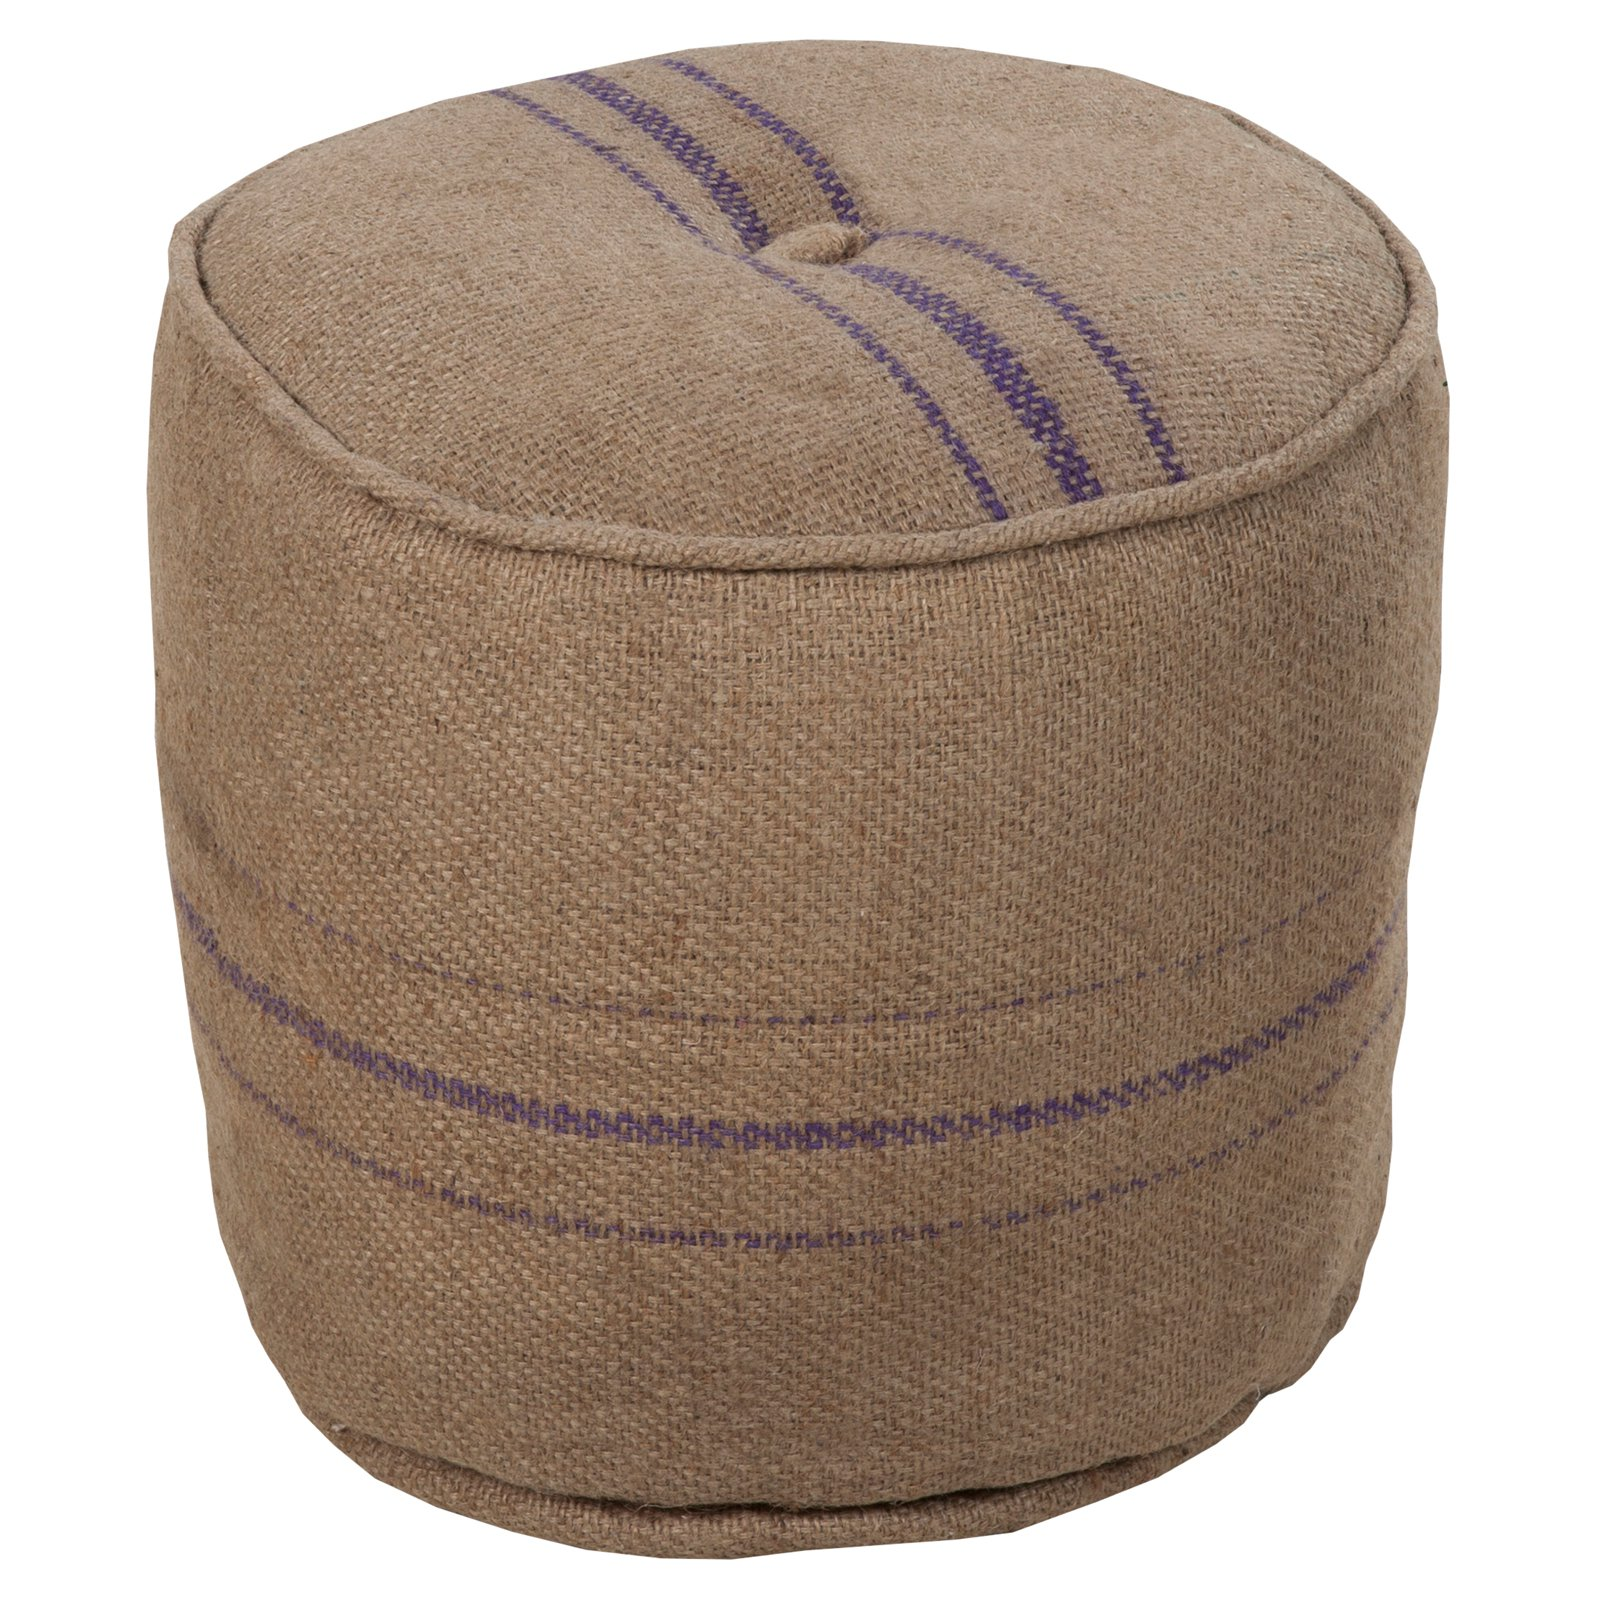 Surya 18 in. Round Jute Pouf Desert Sand   Purple by Surya Rugs